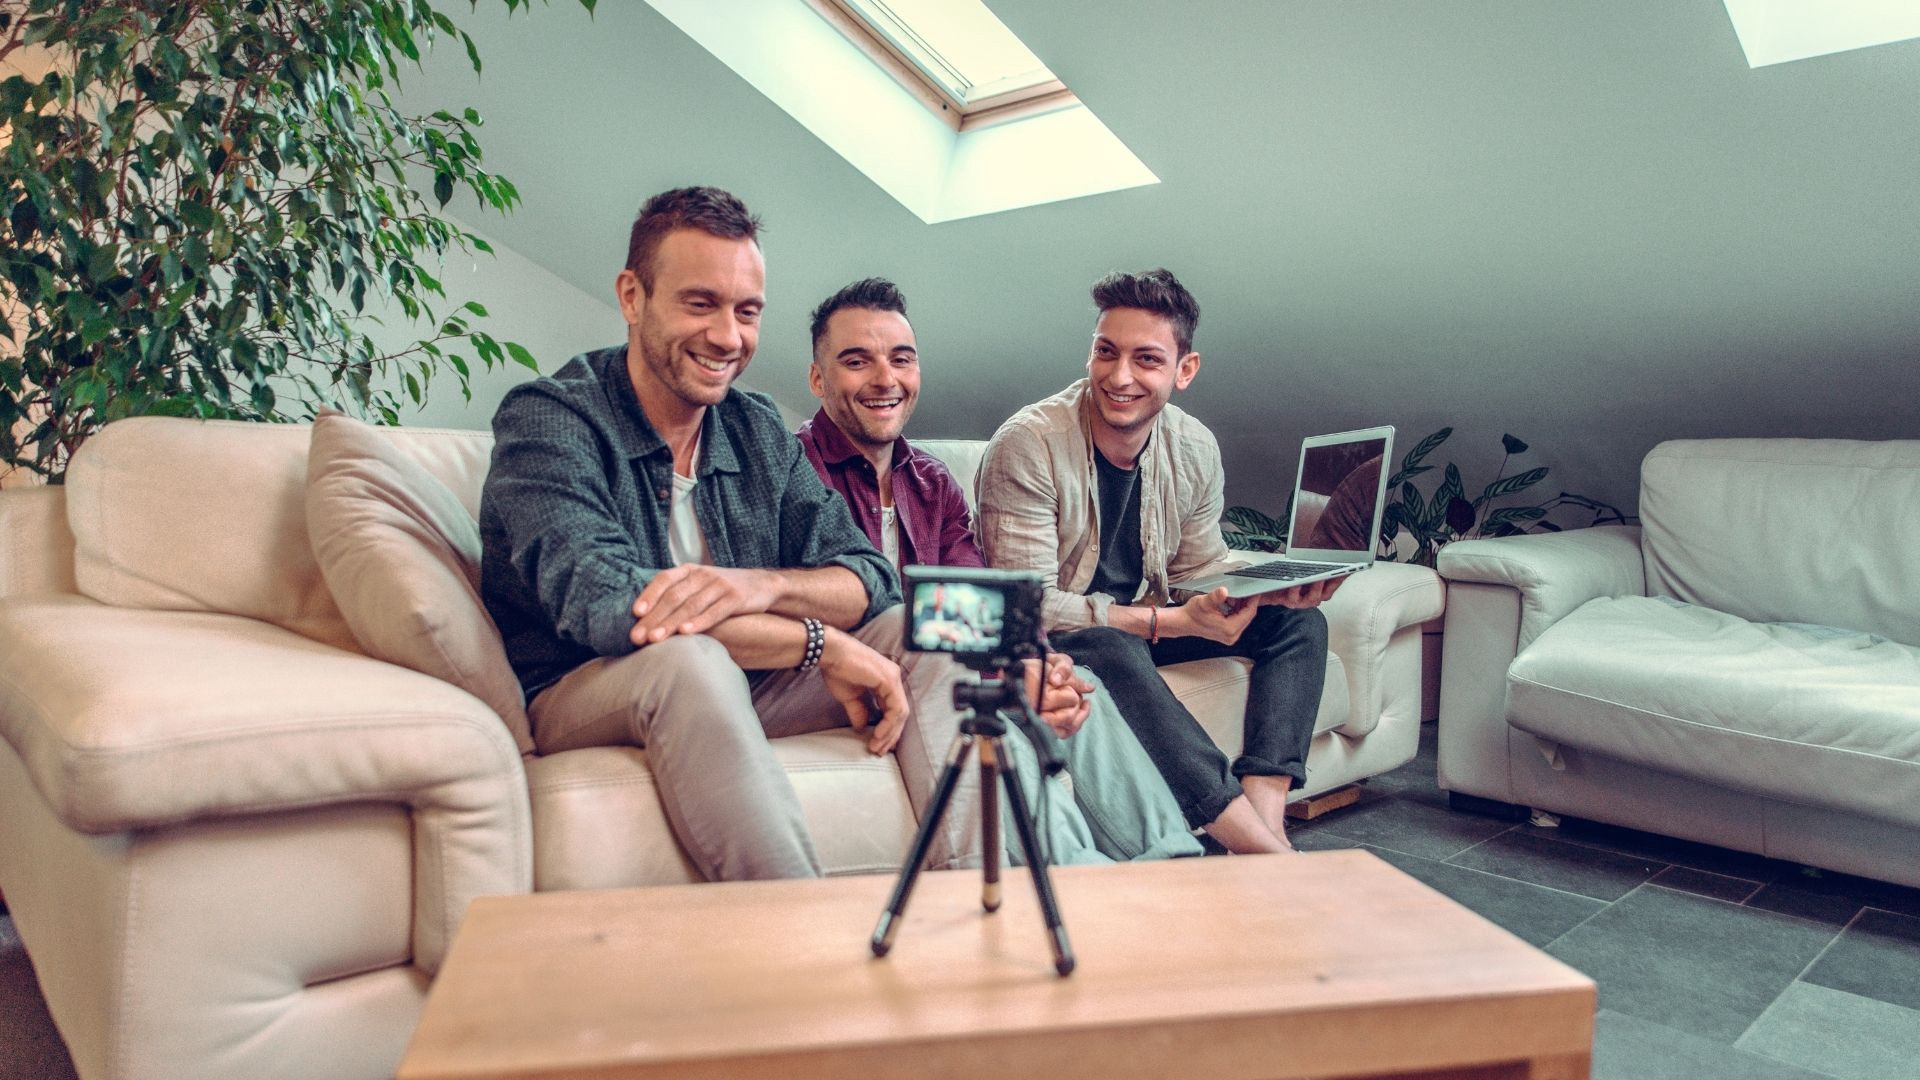 5 Ways To Use Micro-Influencer Marketing To Grow Your Business